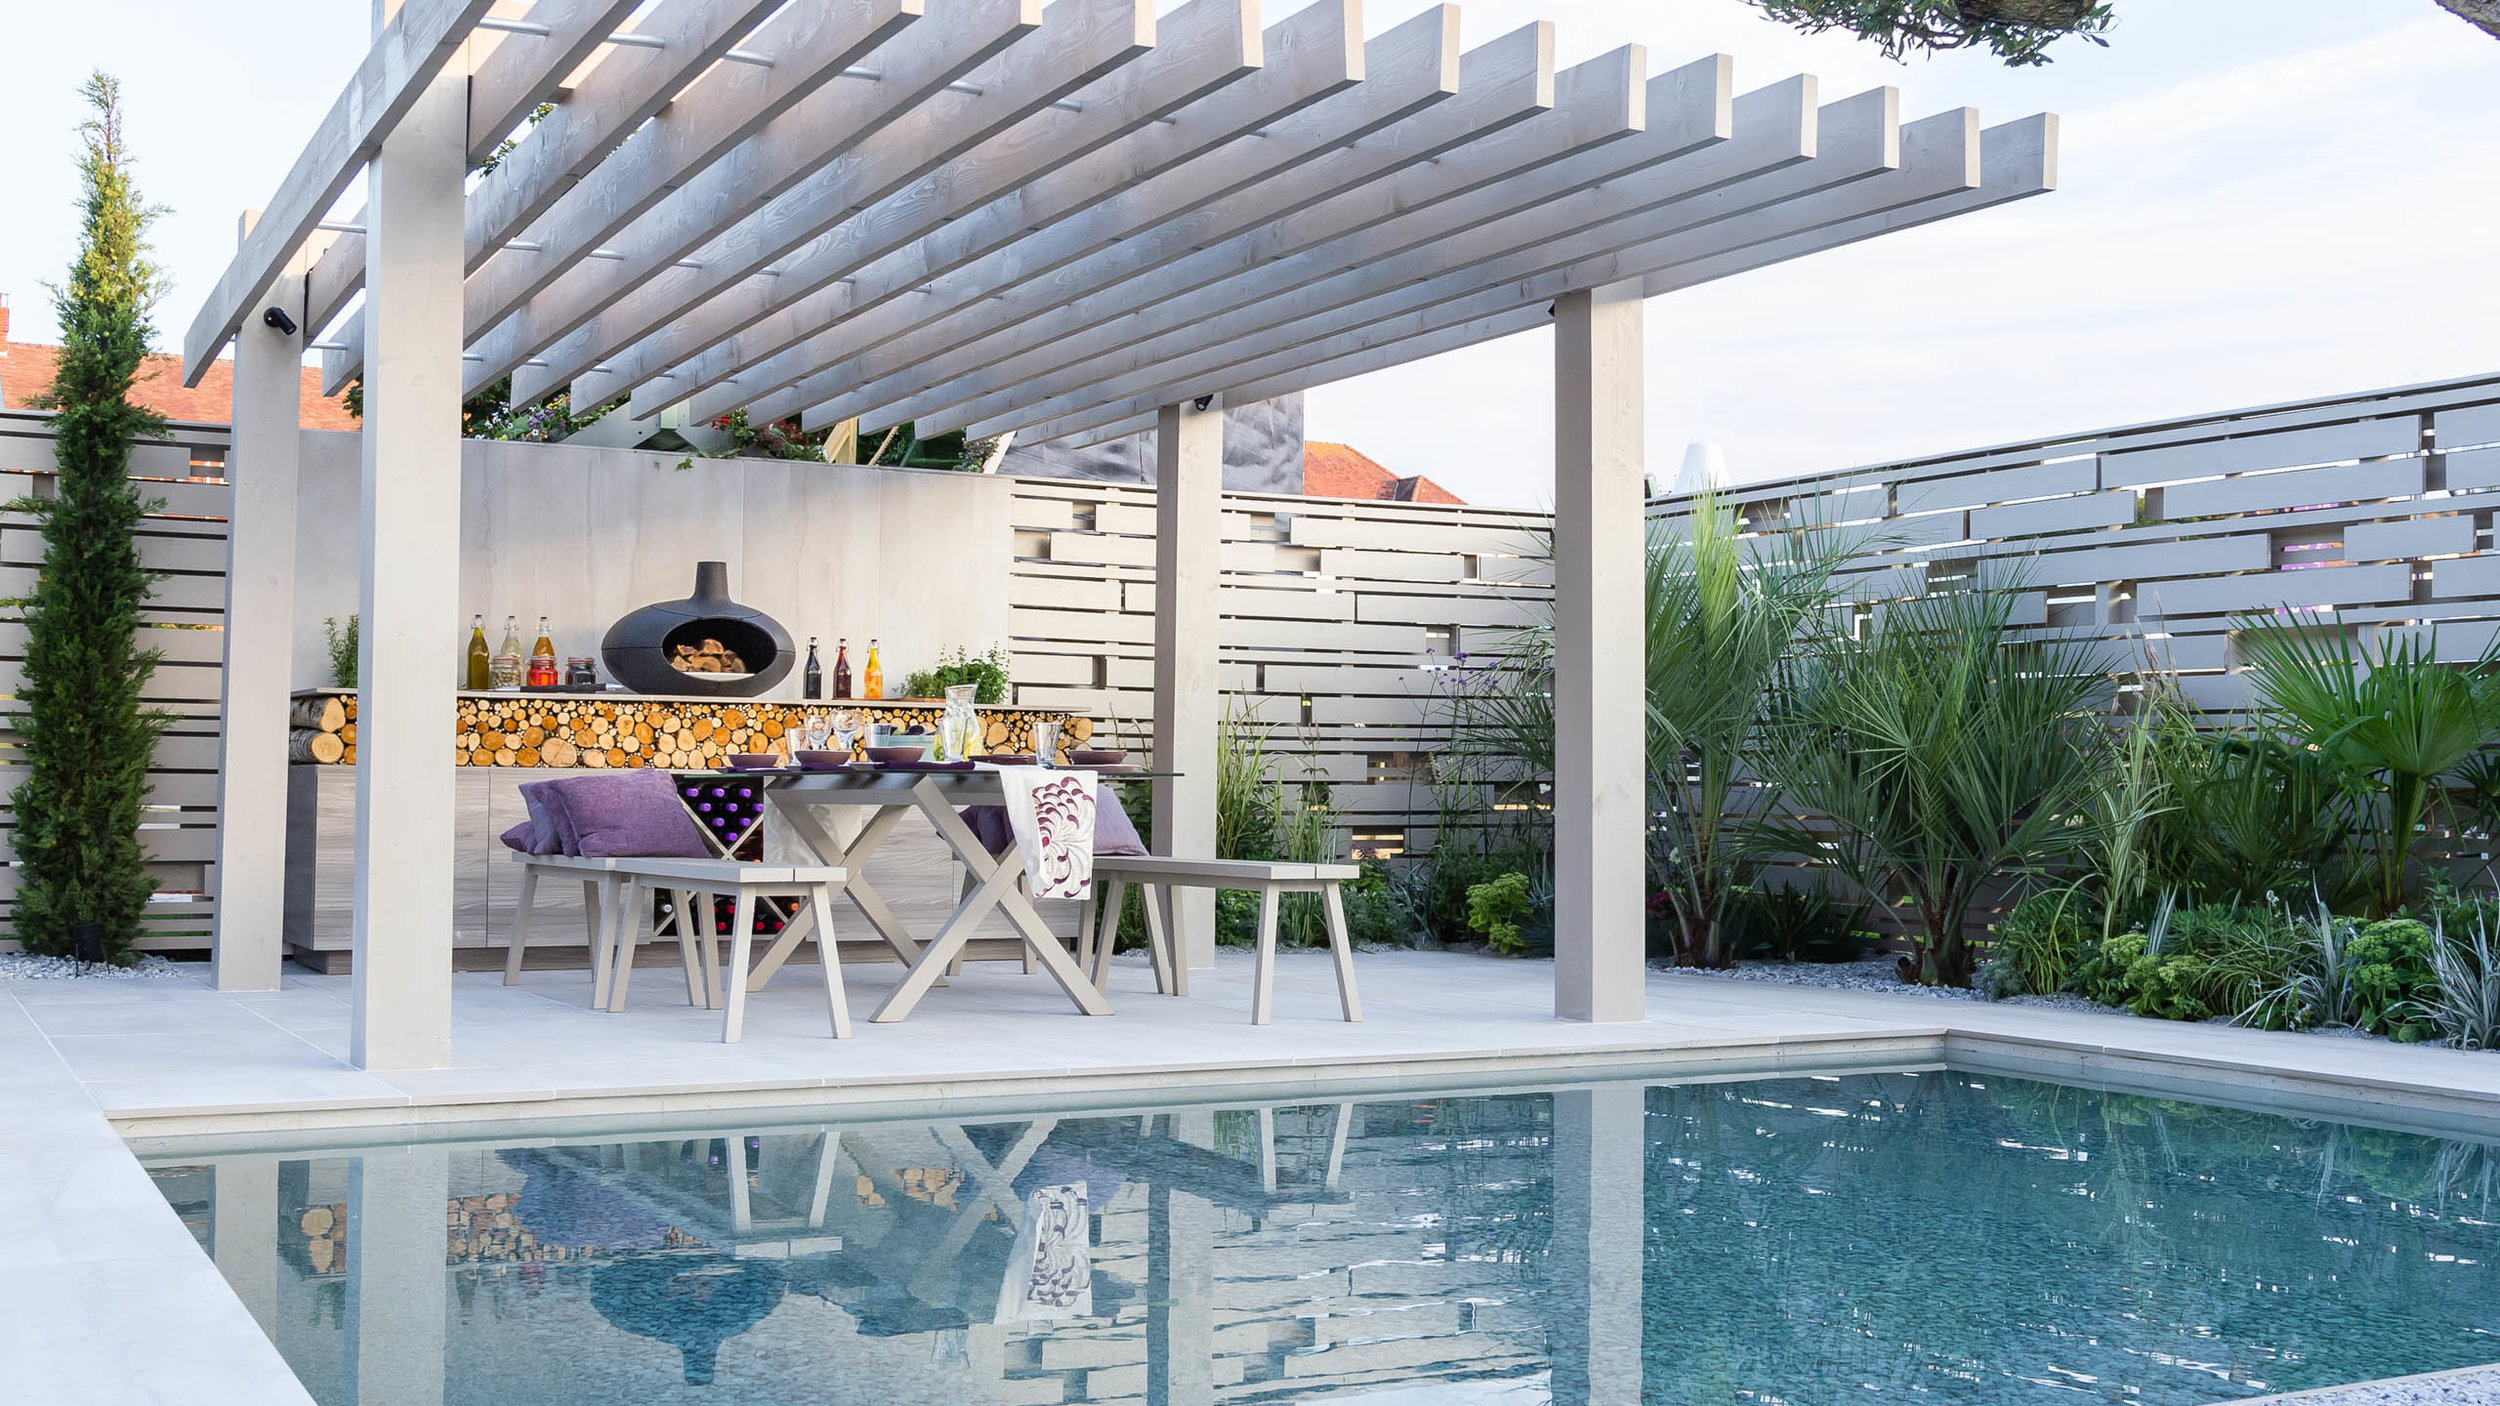 Southport Garden Design: A View Of The Olive Tree: Pergola Over Seating Area And Outdoor Kitchen